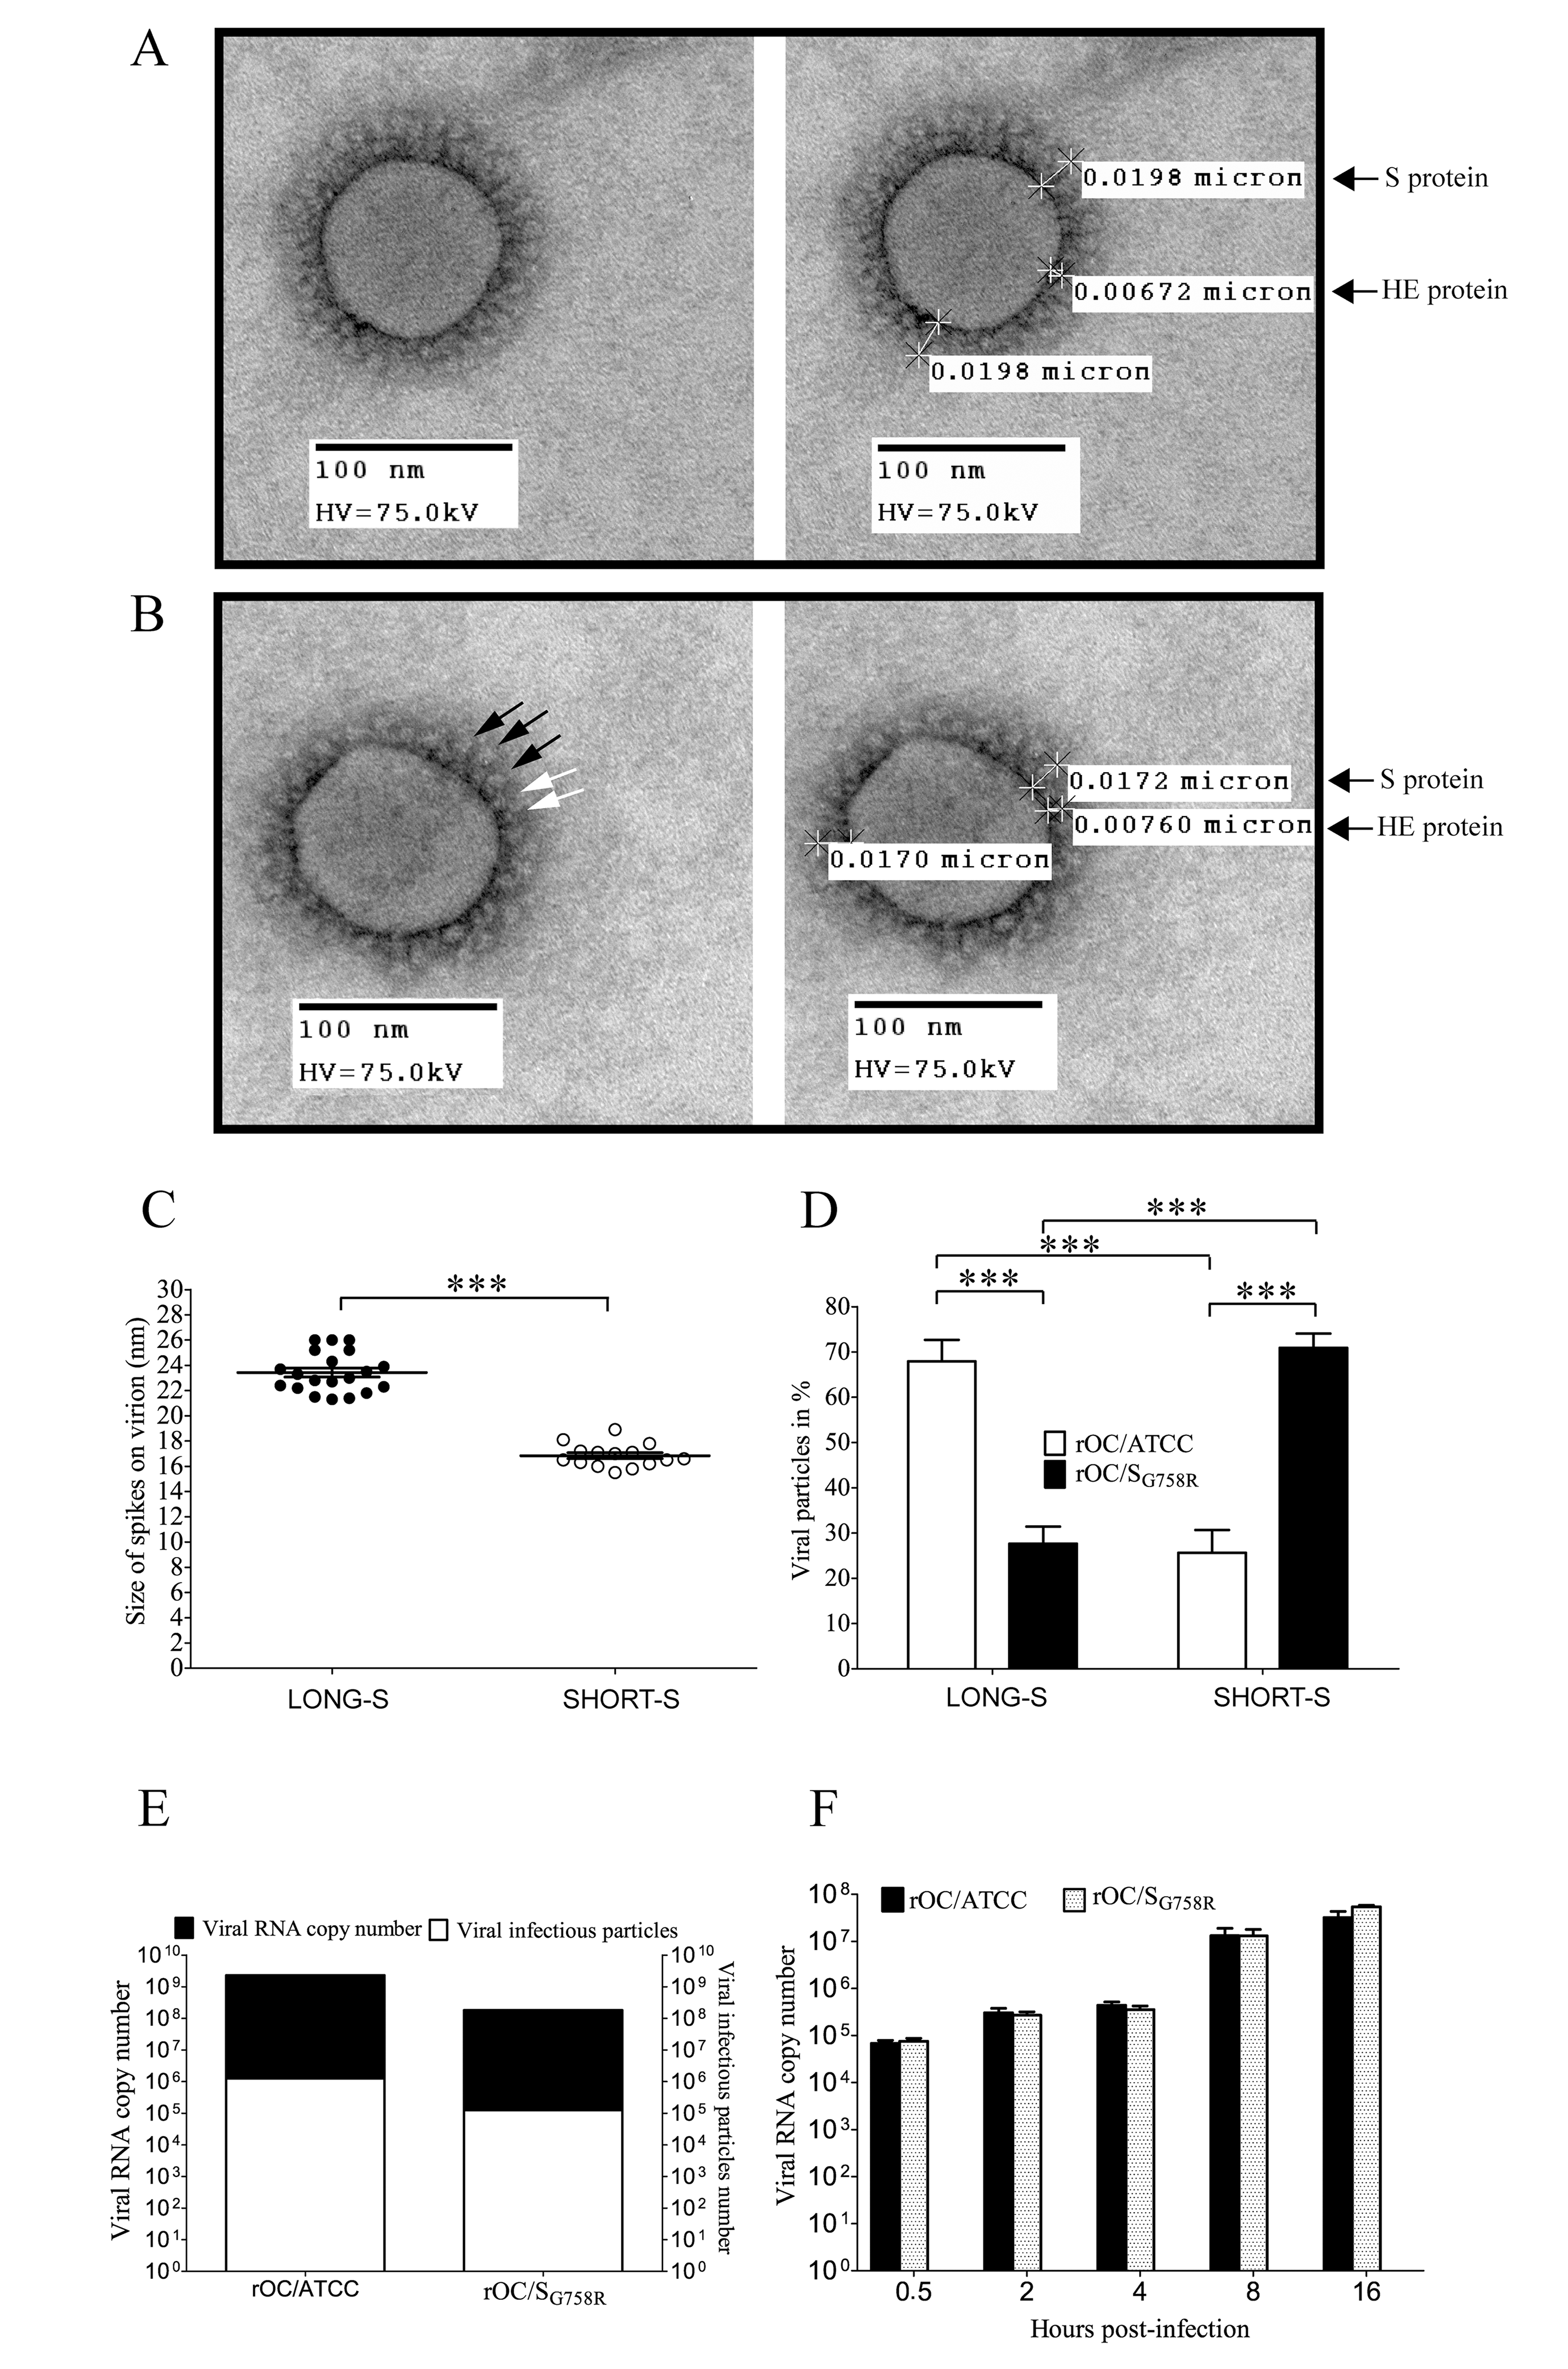 Morphology of viral crown peplomers is dependent on cleavage of the S glycoprotein but does not affect virus infectivity.